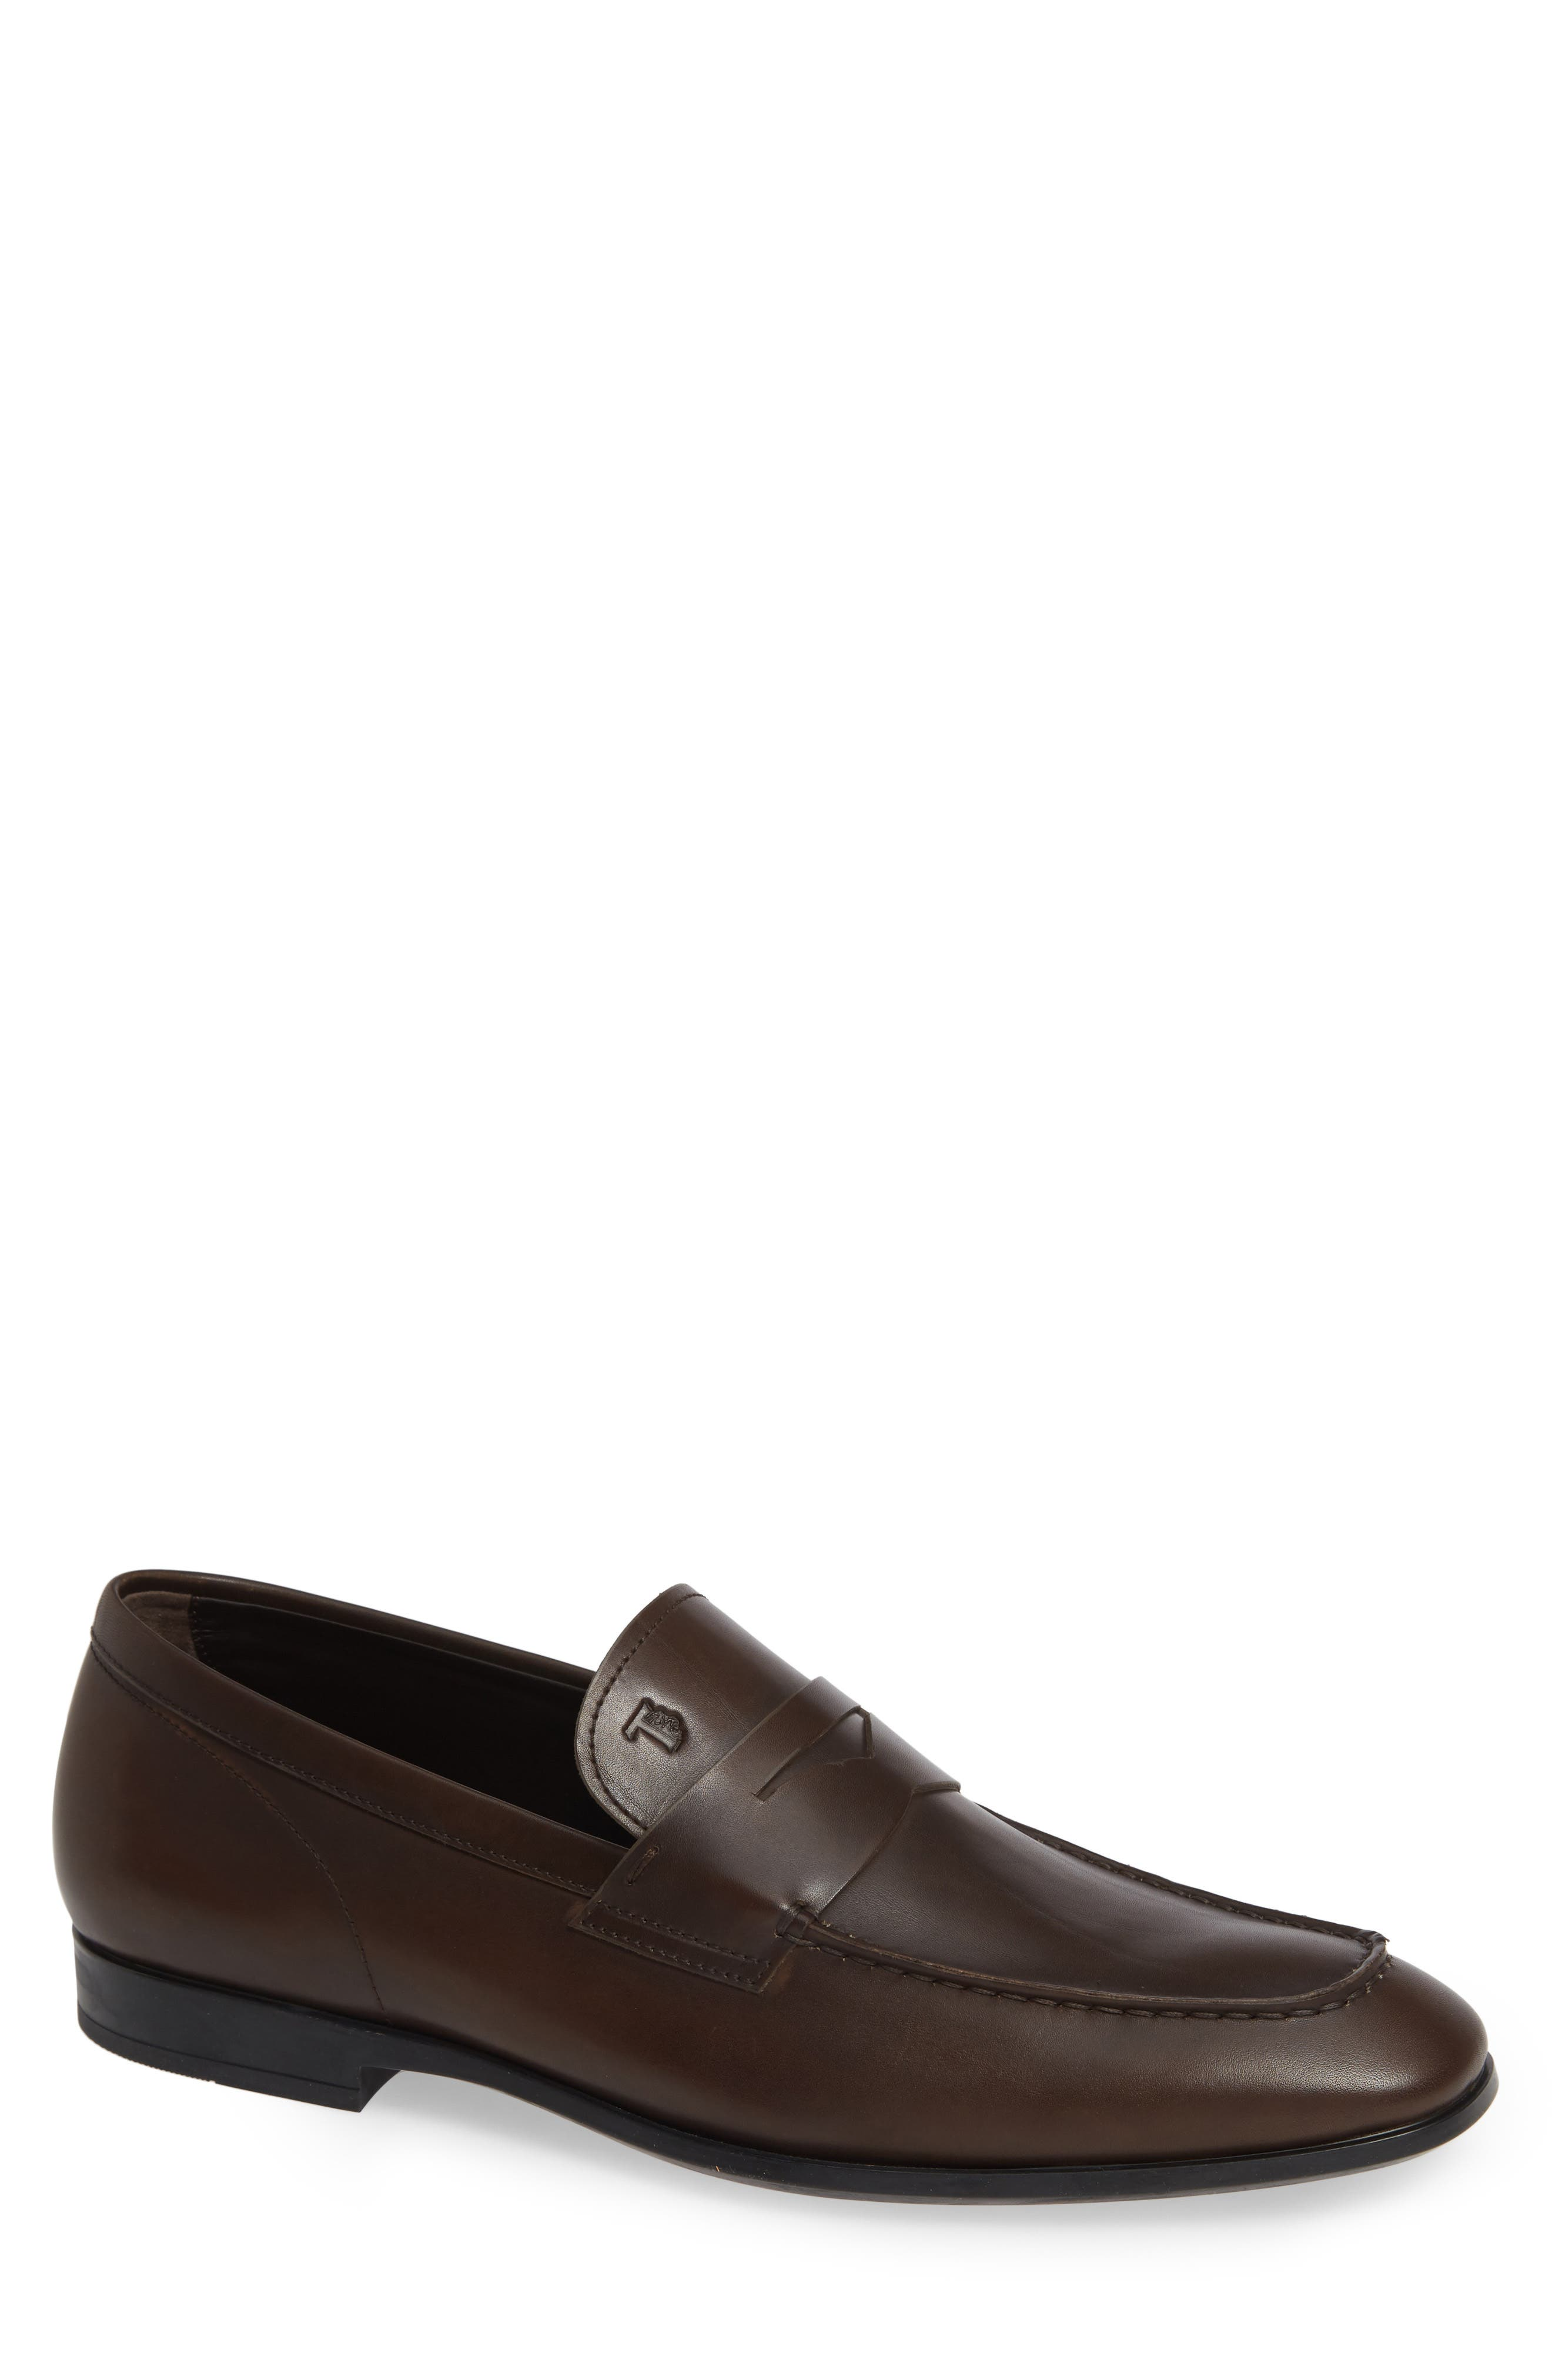 'Mocassino' Suede Penny Loafer in Dark Brown